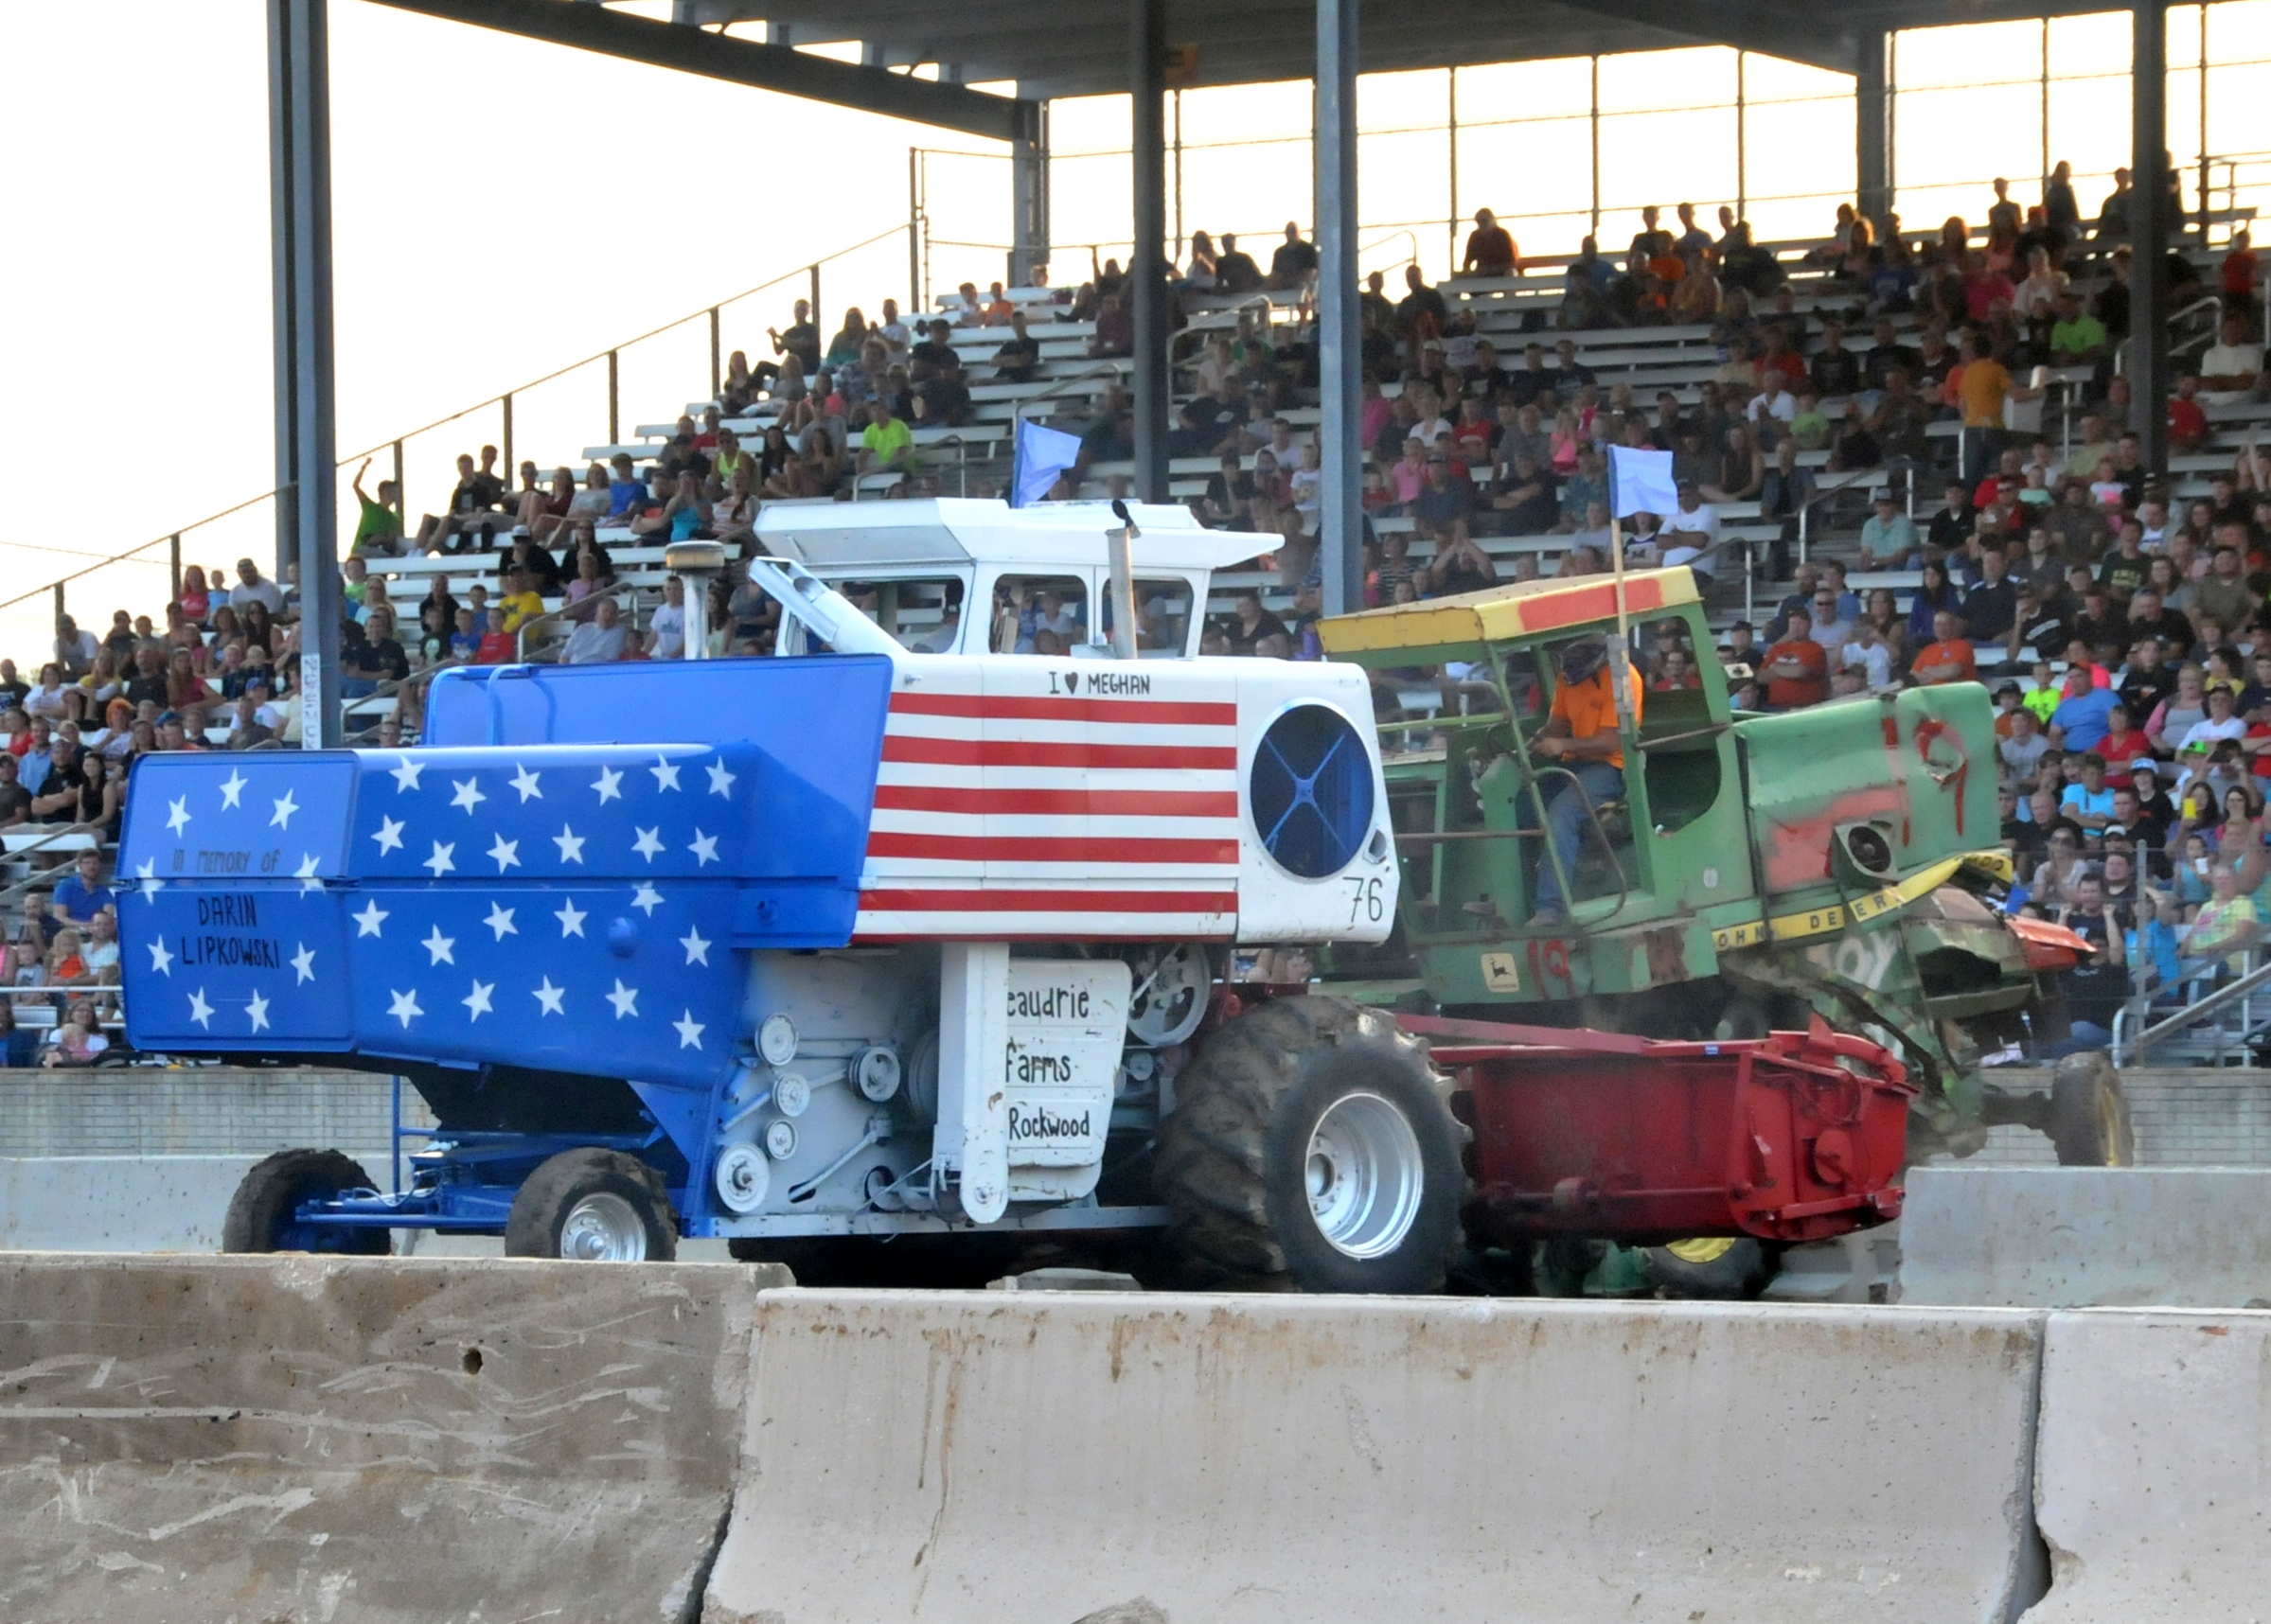 Combine Demolition Derby